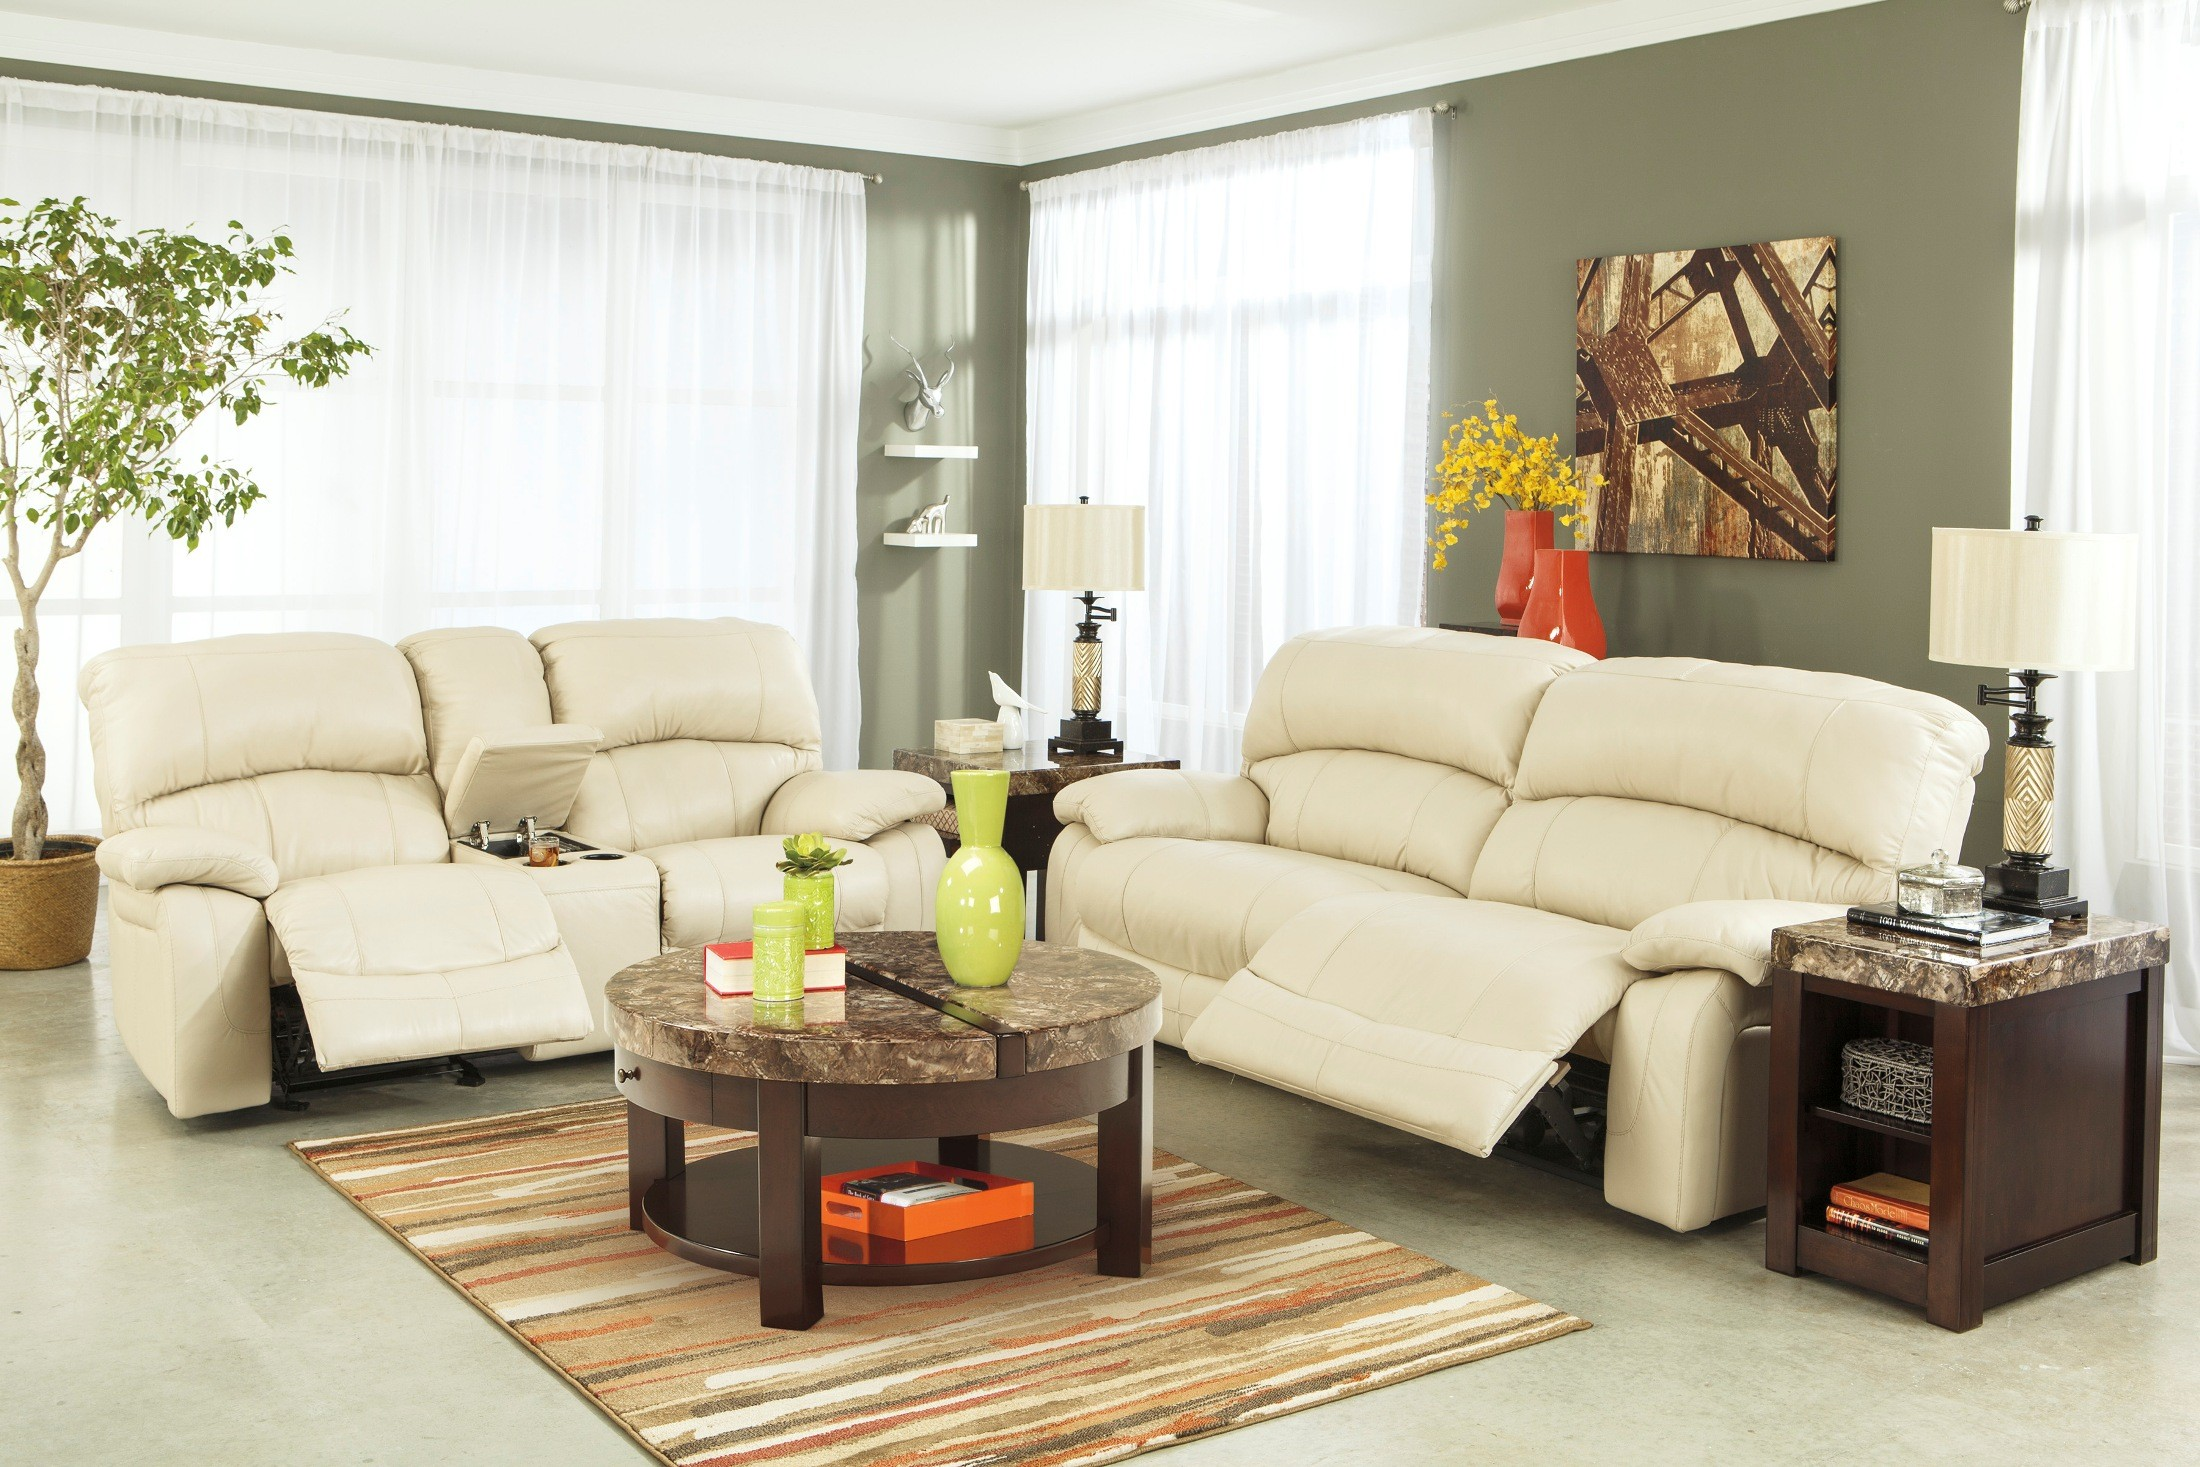 damacio cream power reclining living room set from ashley u98201 47